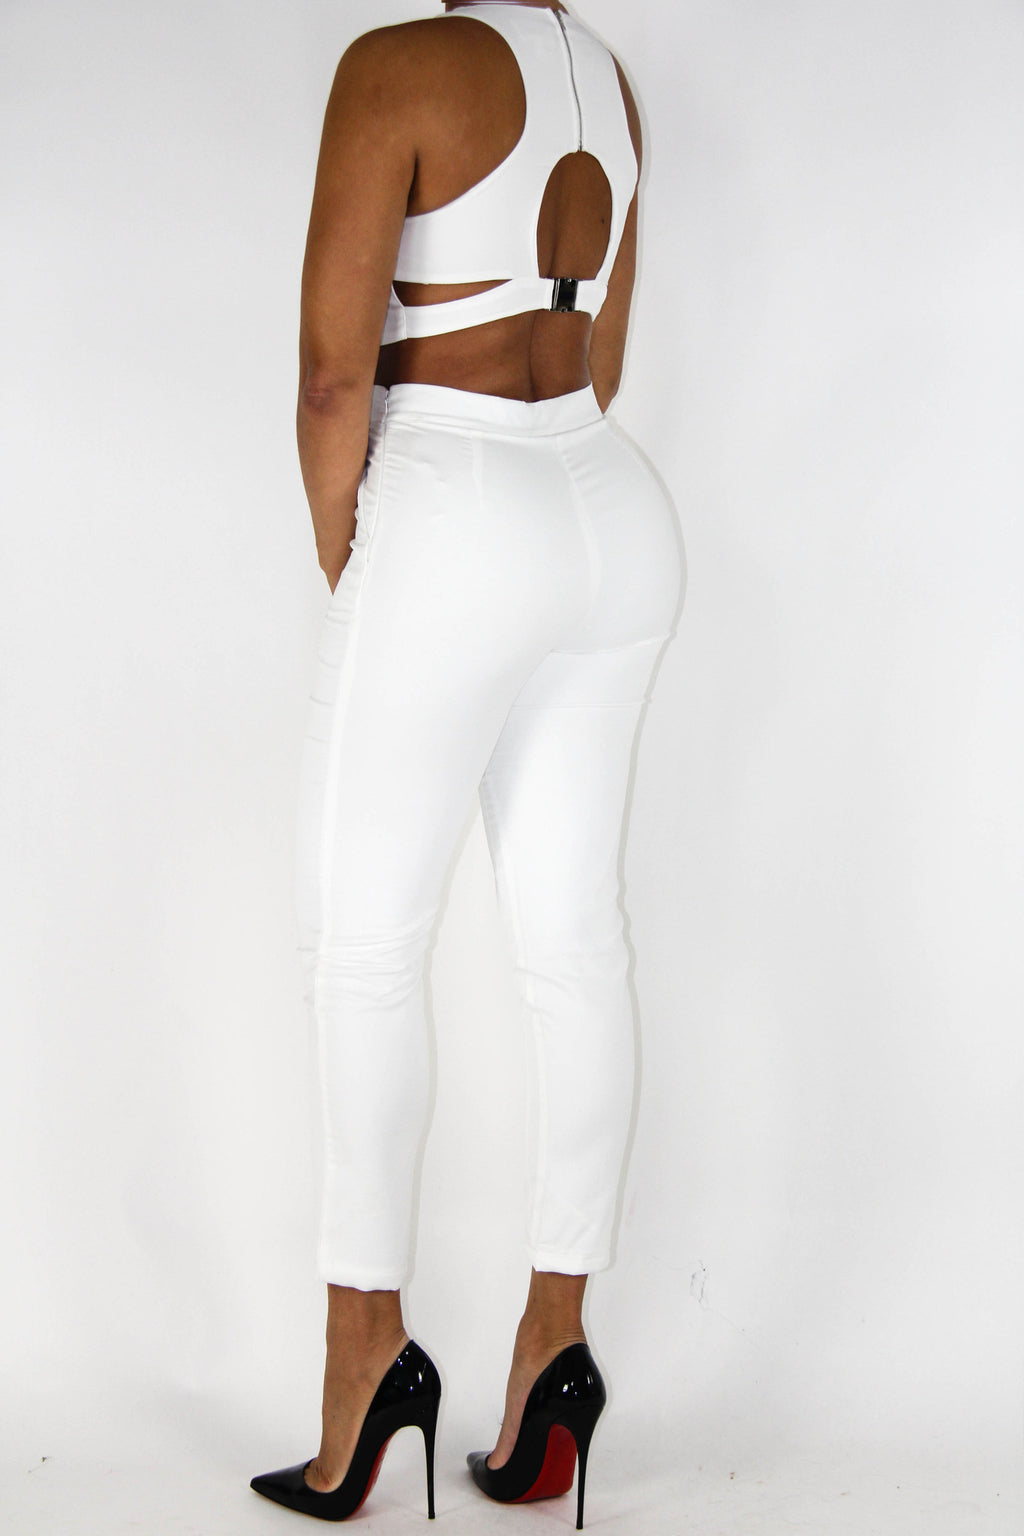 Spring White Outfit, Bottoms - Style Dirty